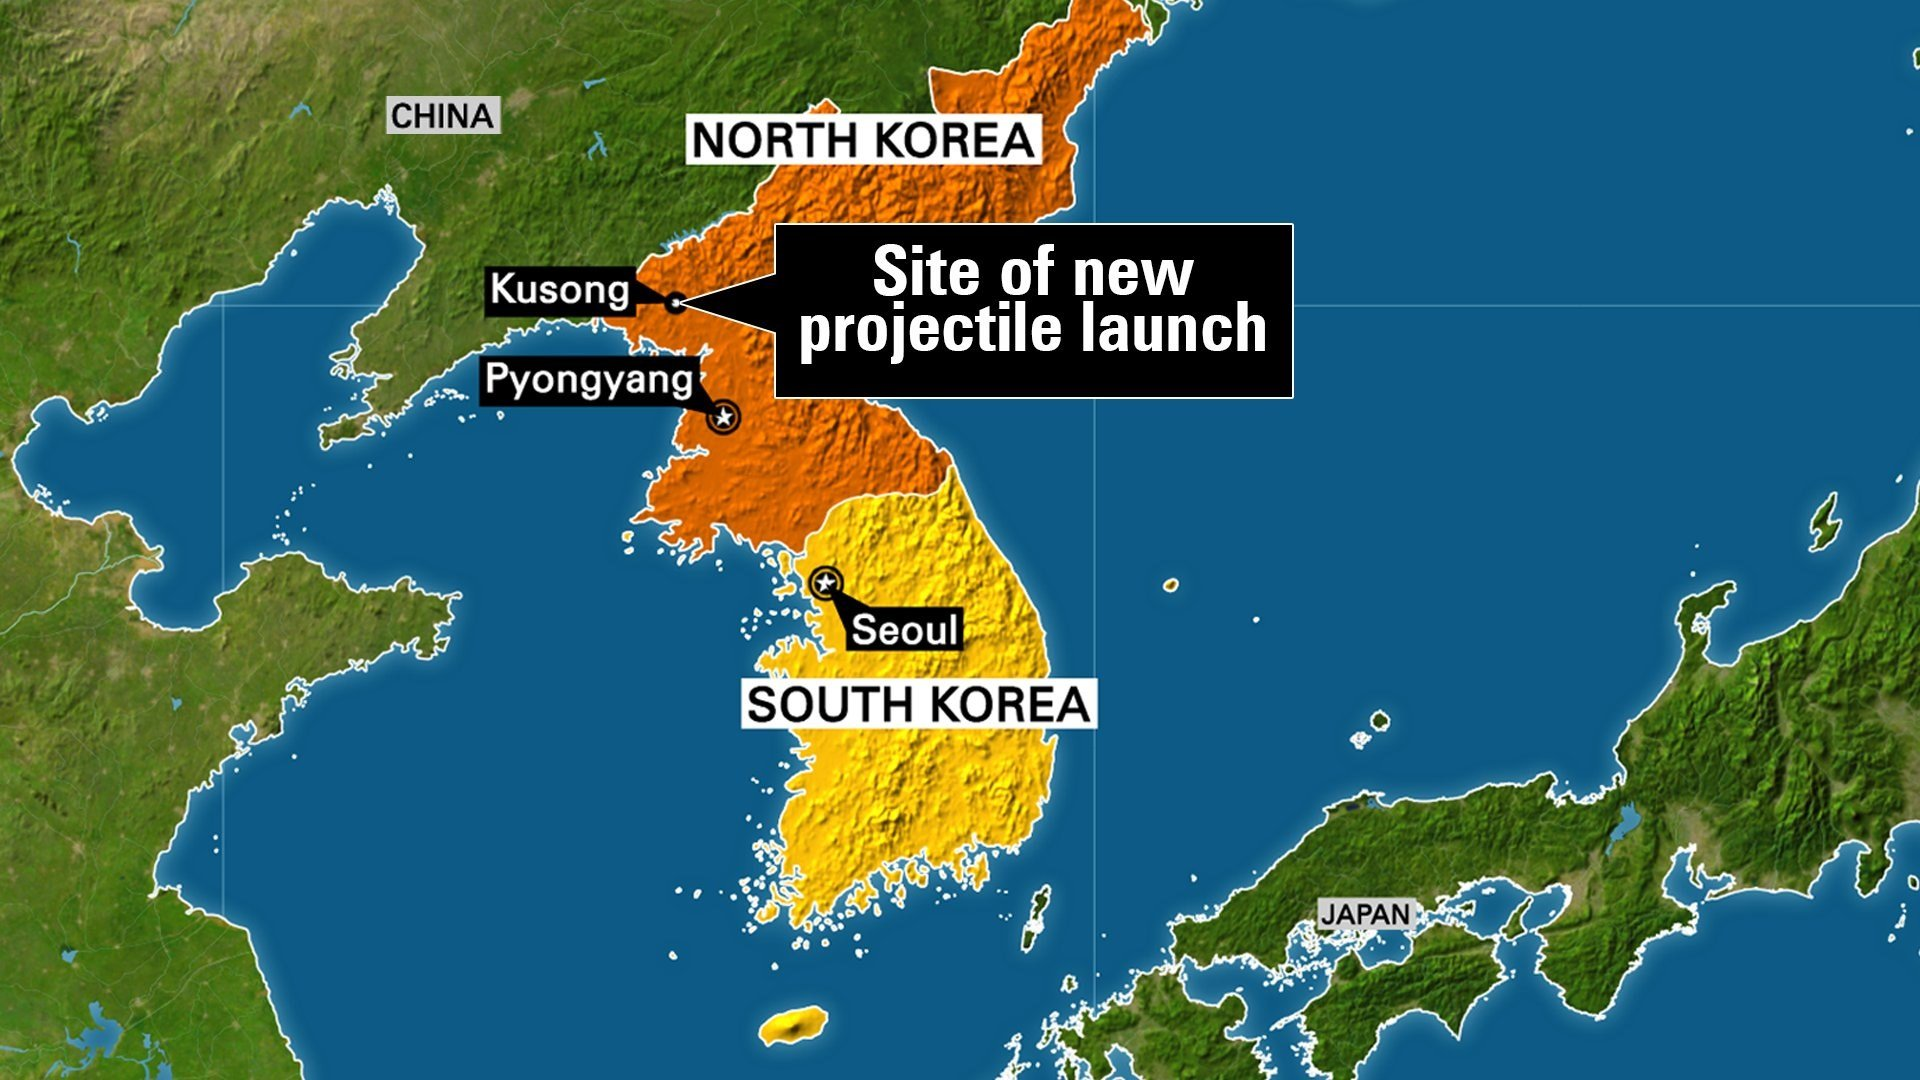 North Korea launched a ballistic missile from the northwestern part of the country early Sunday the South Korean Joints Chief of Staff said